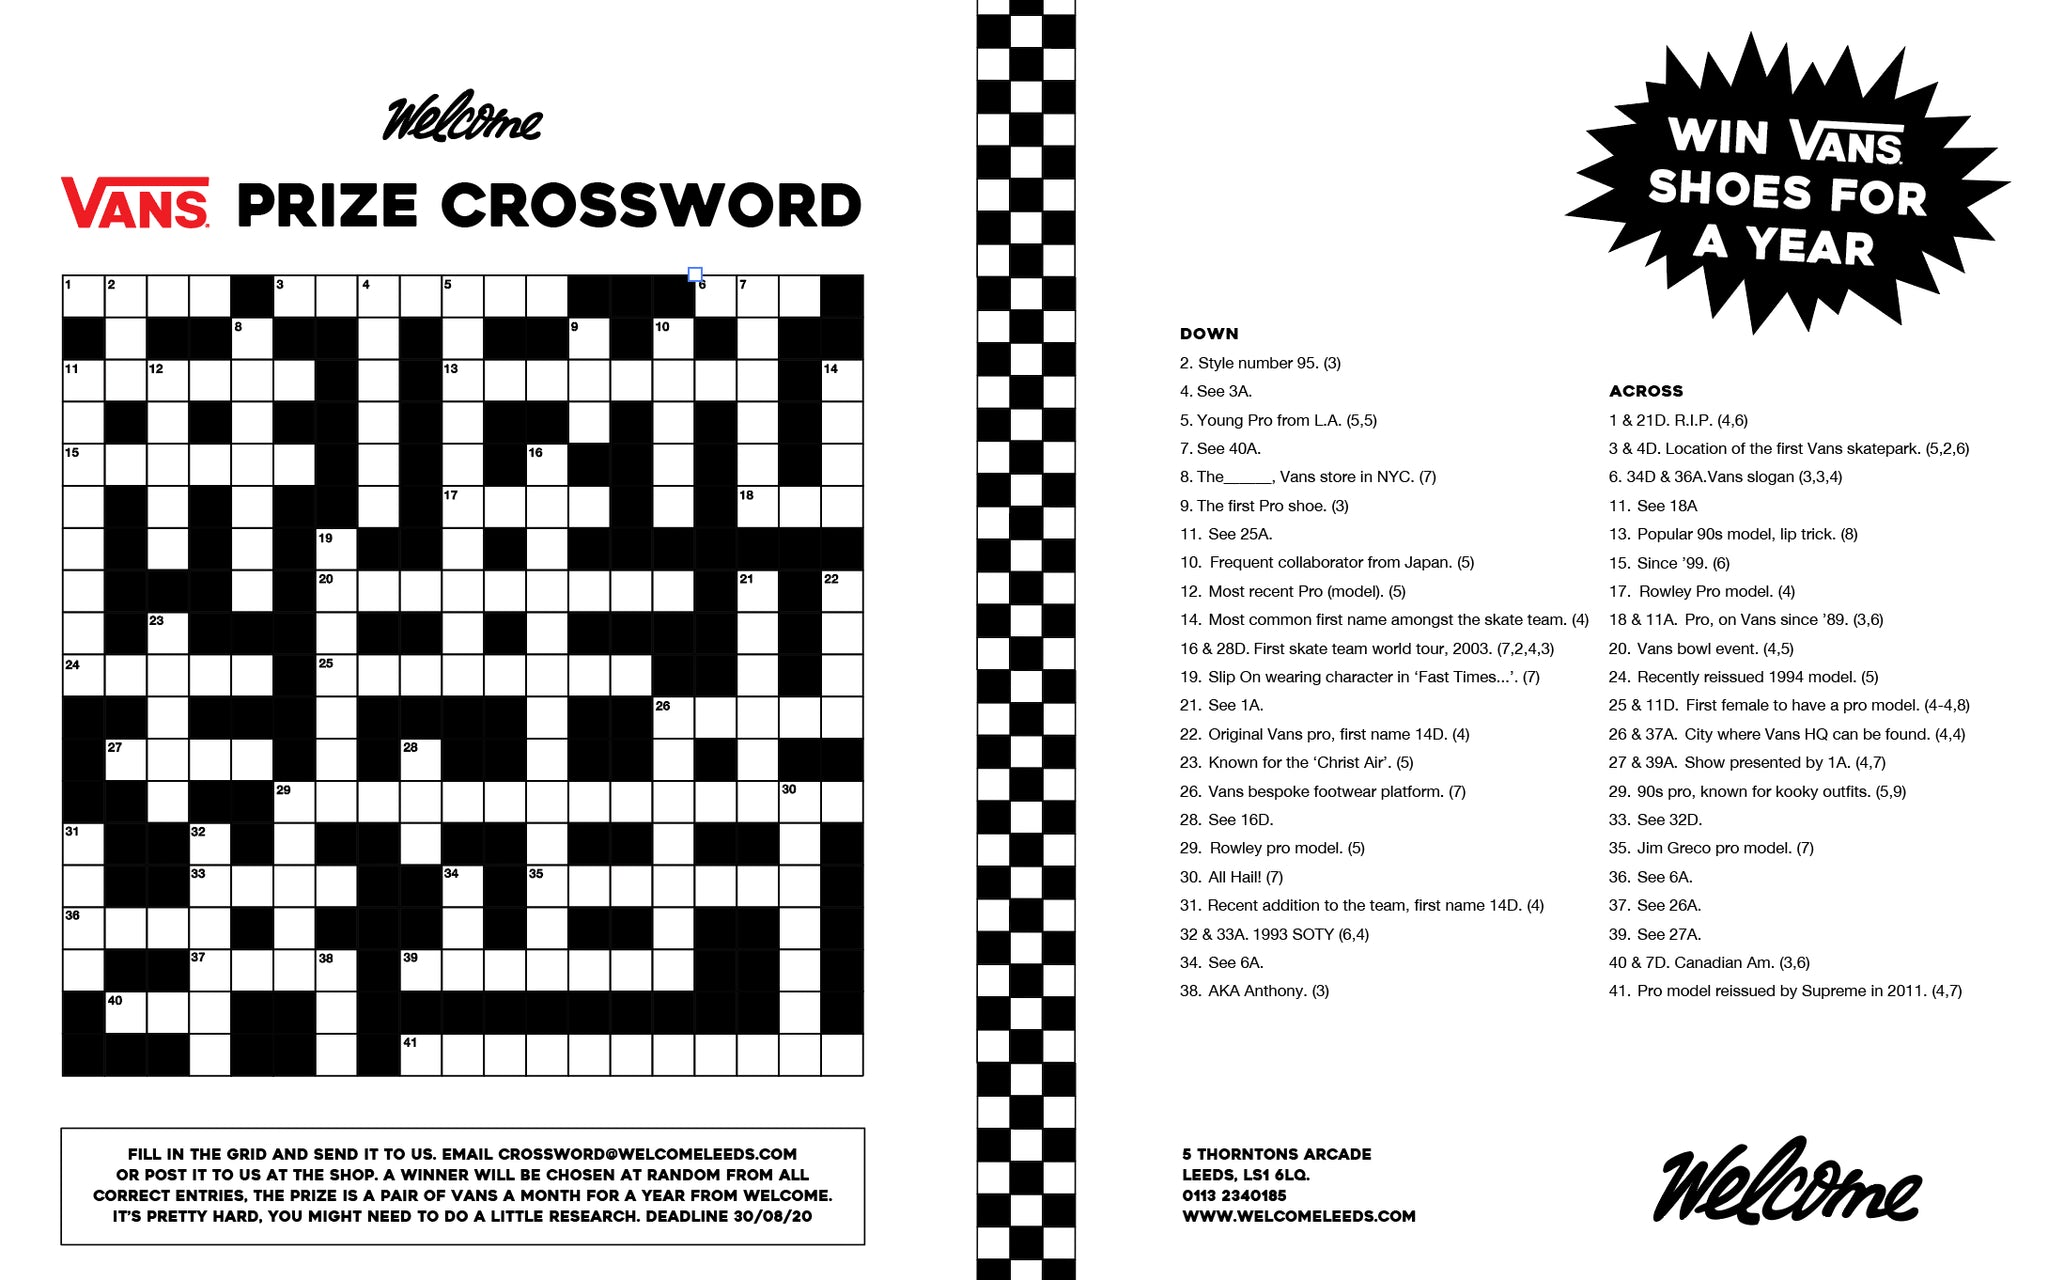 Vans Prize Crossword